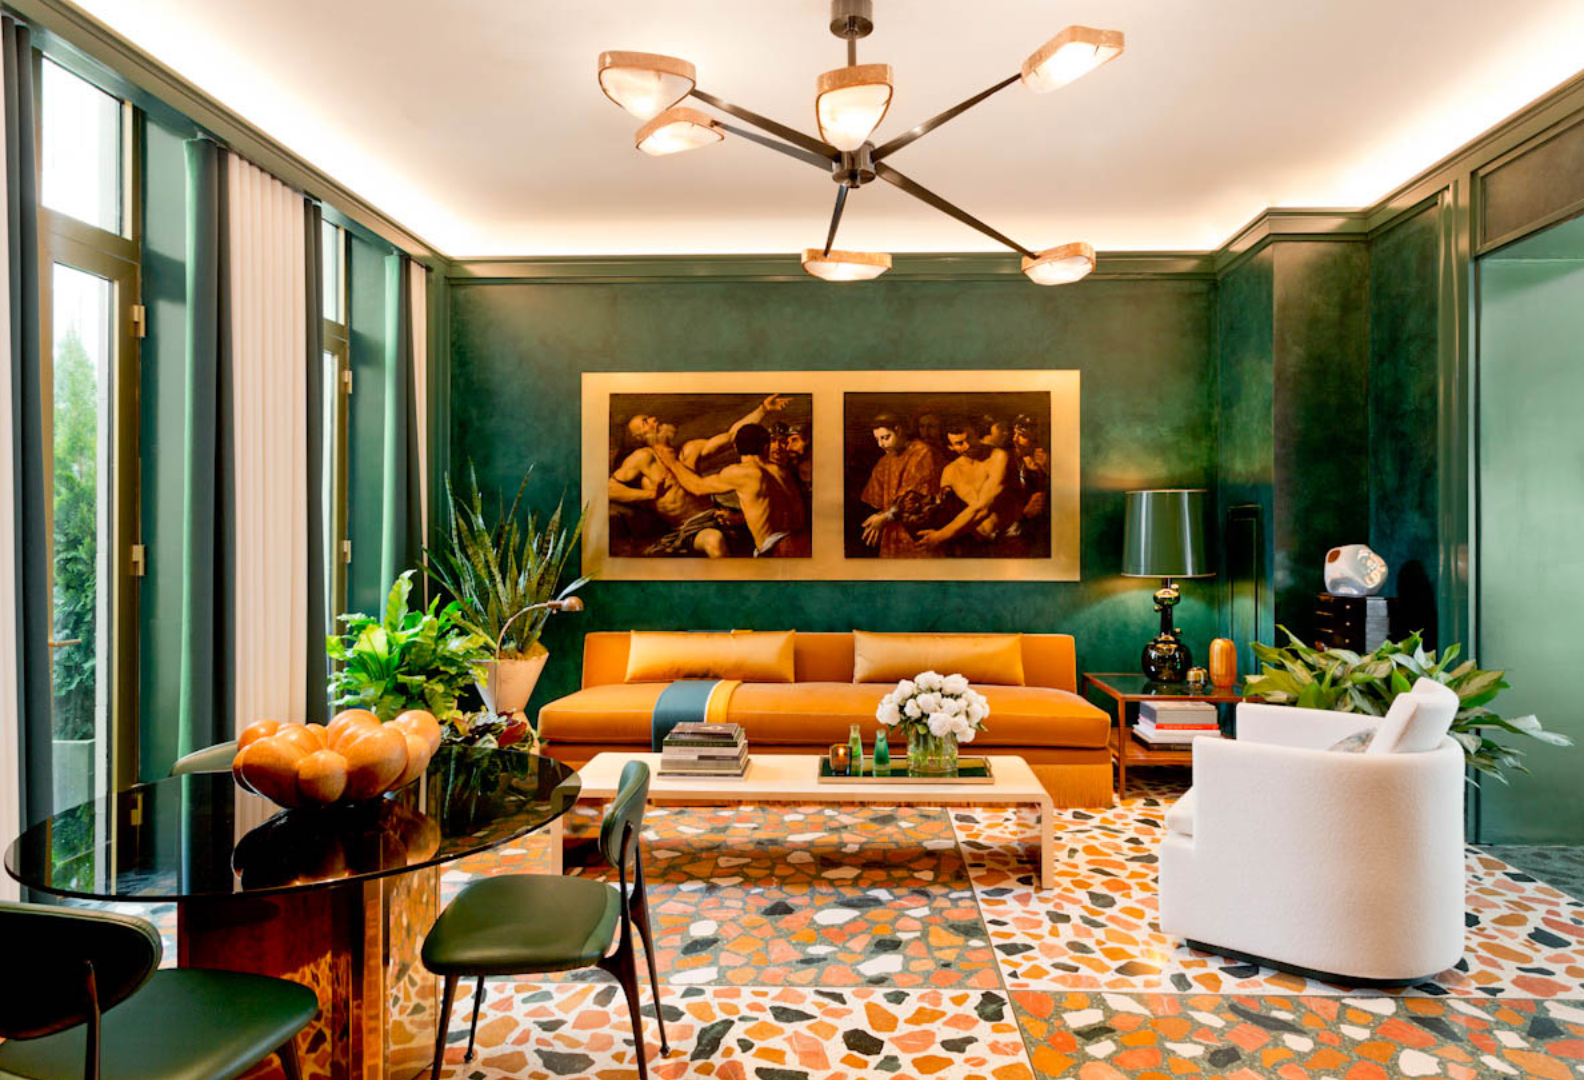 Living room with green walls